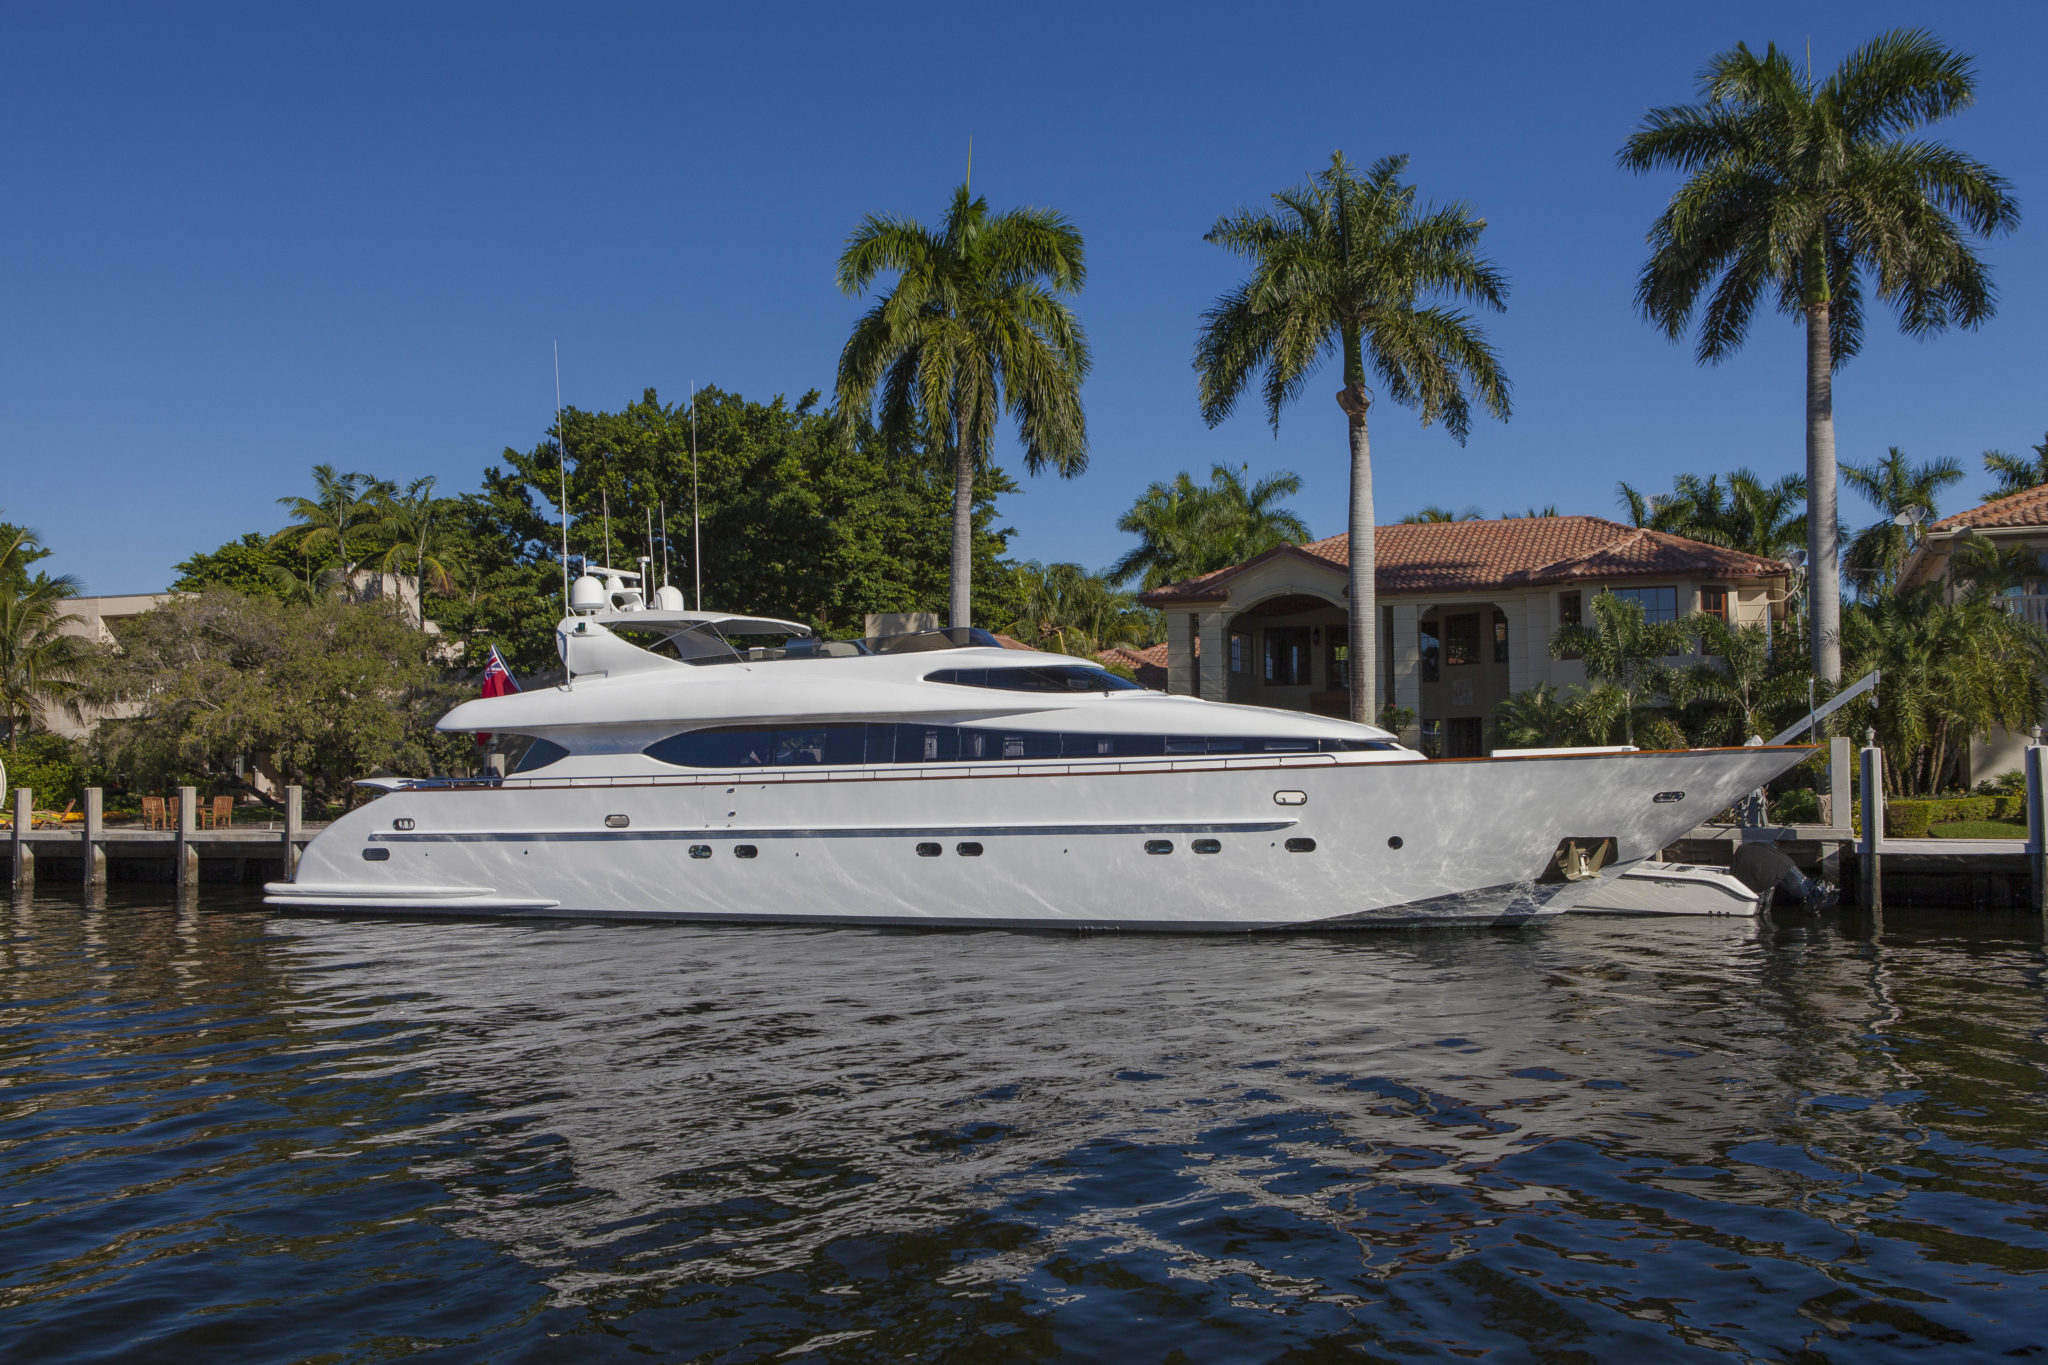 The motor yacht SASHAY sold by Worth Avenue Yachts in April 2015